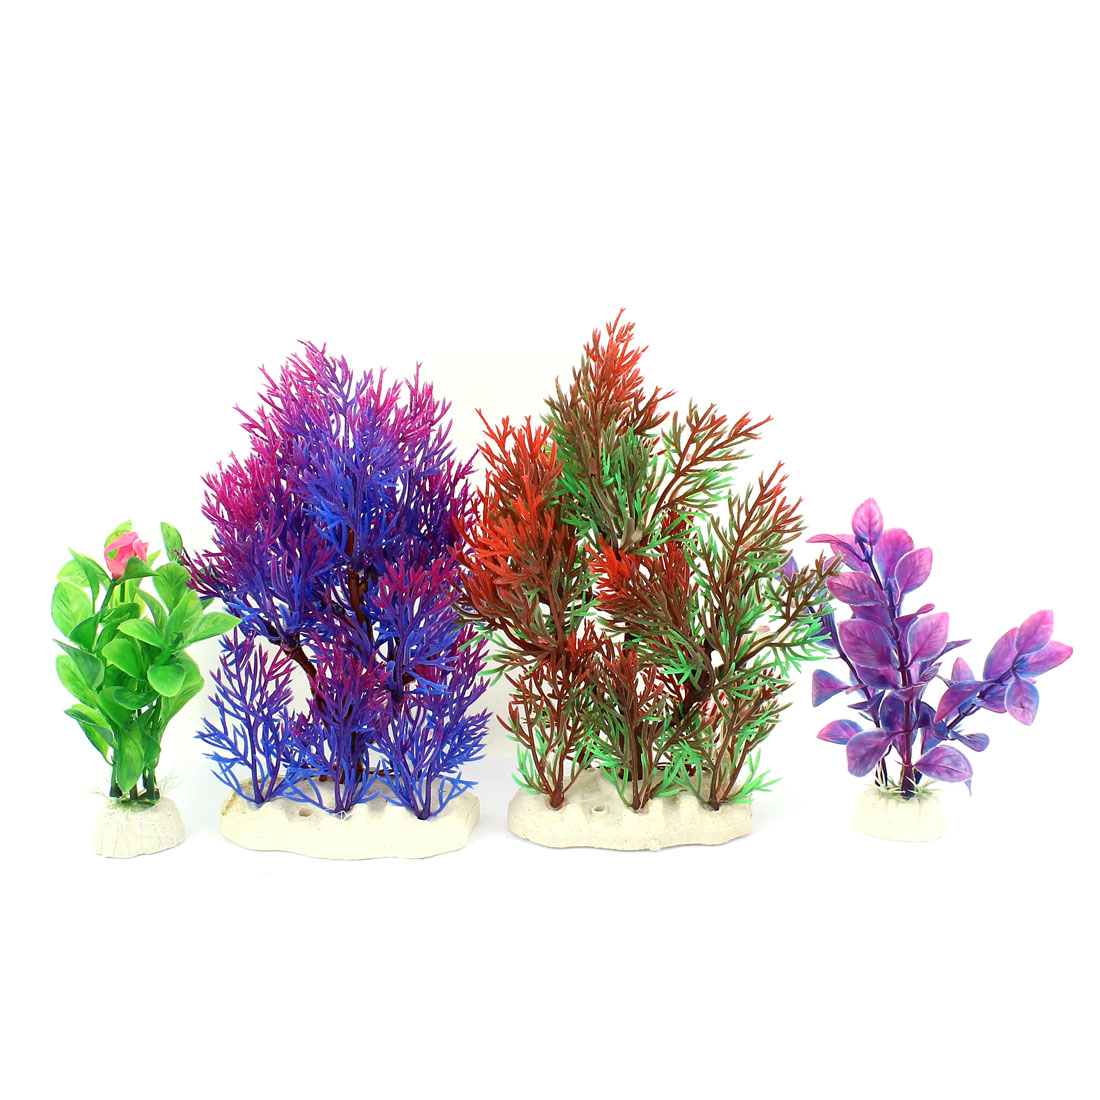 4pcs Artificial Simulation Aquarium Tank Grass Plants Landscape Decoration